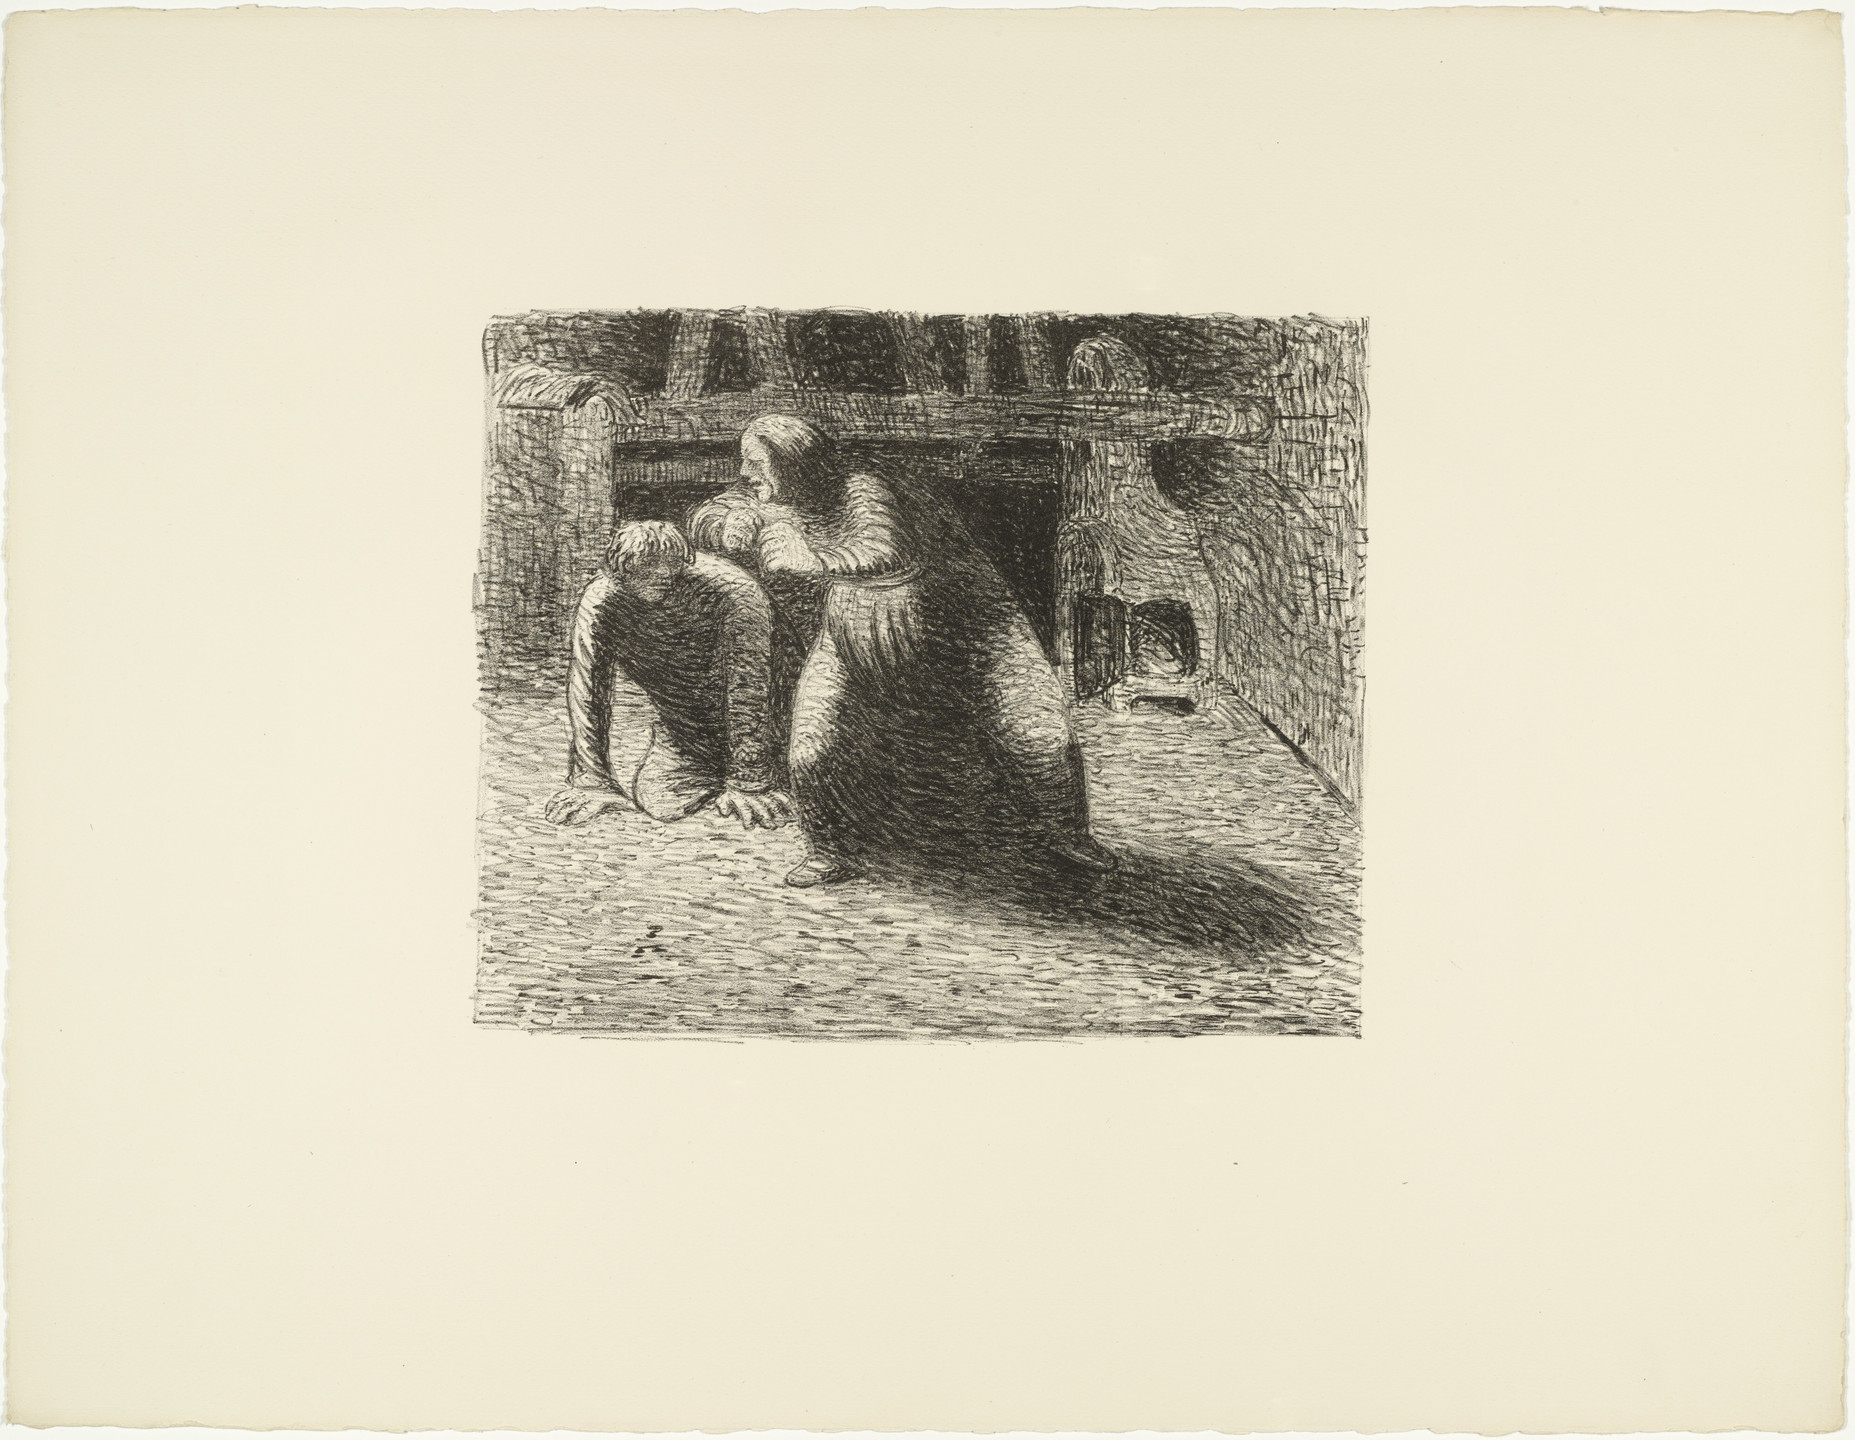 Ernst Barlach. The Curse (Verfluchung) from The Dead Day (Der tote Tag). (1910-11, published 1912)